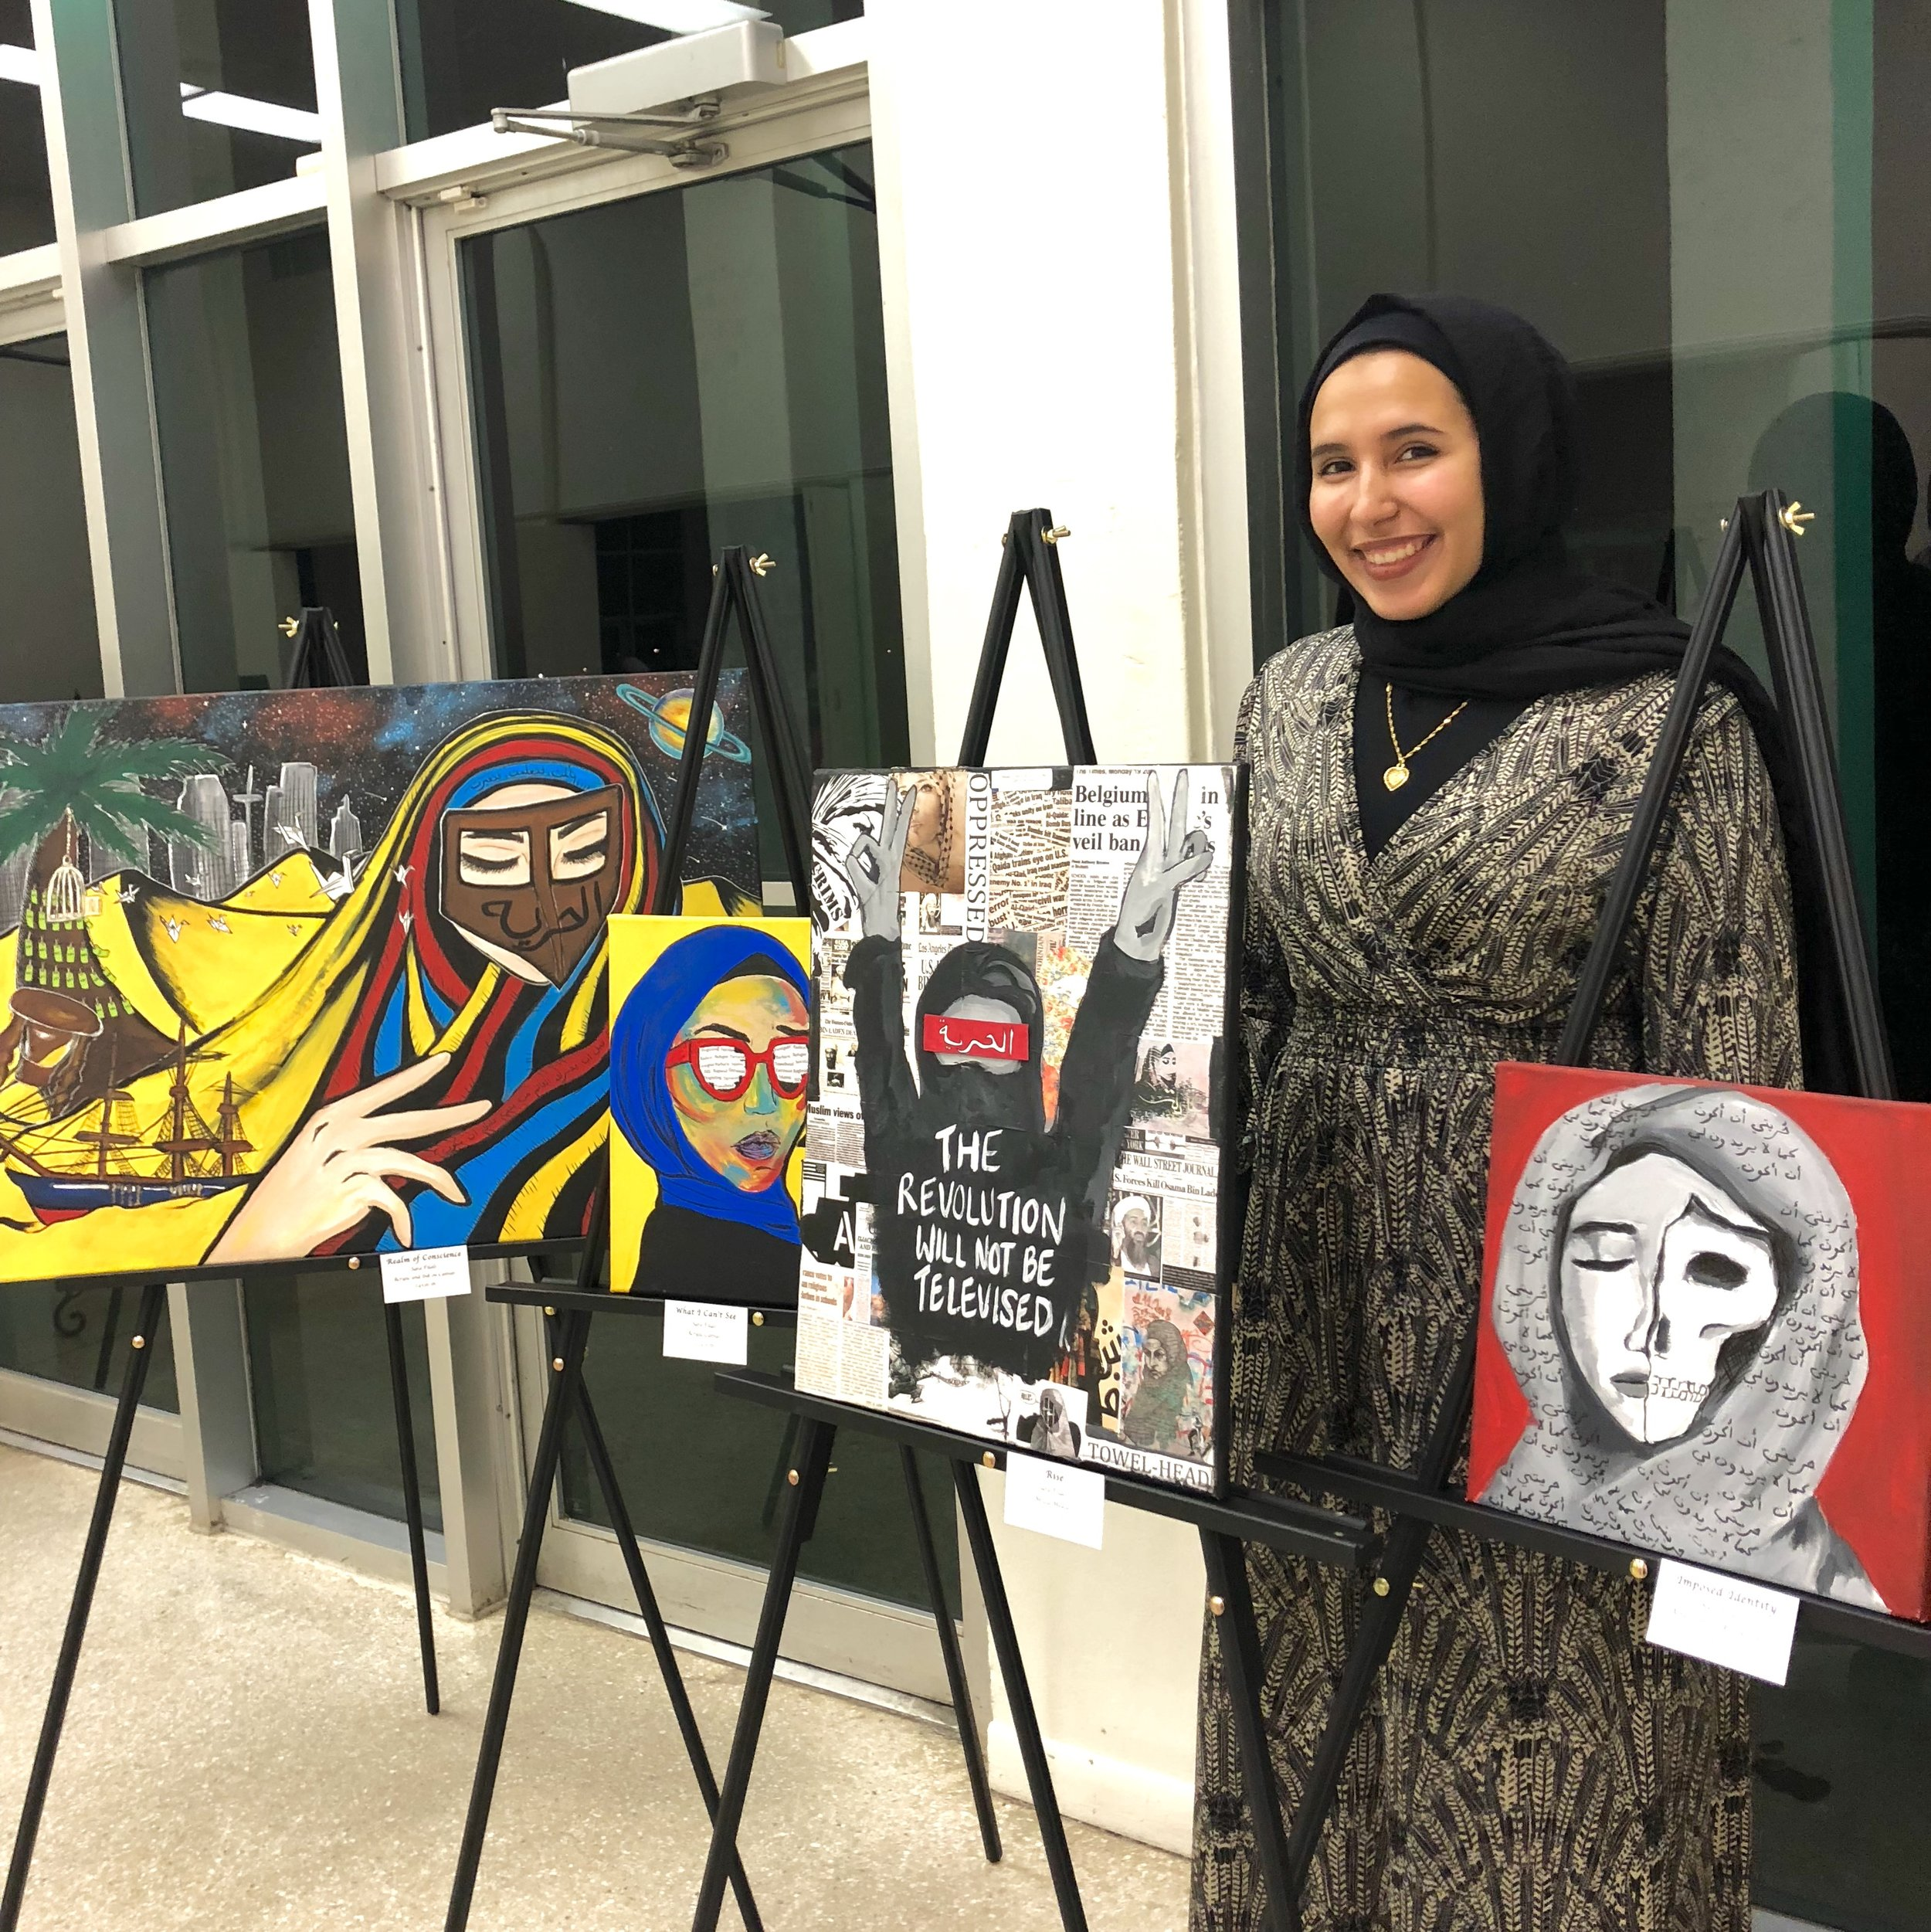 CAIR (Council on American-Islamic Relations) Interfaith Dinner/Gallery, May 2018